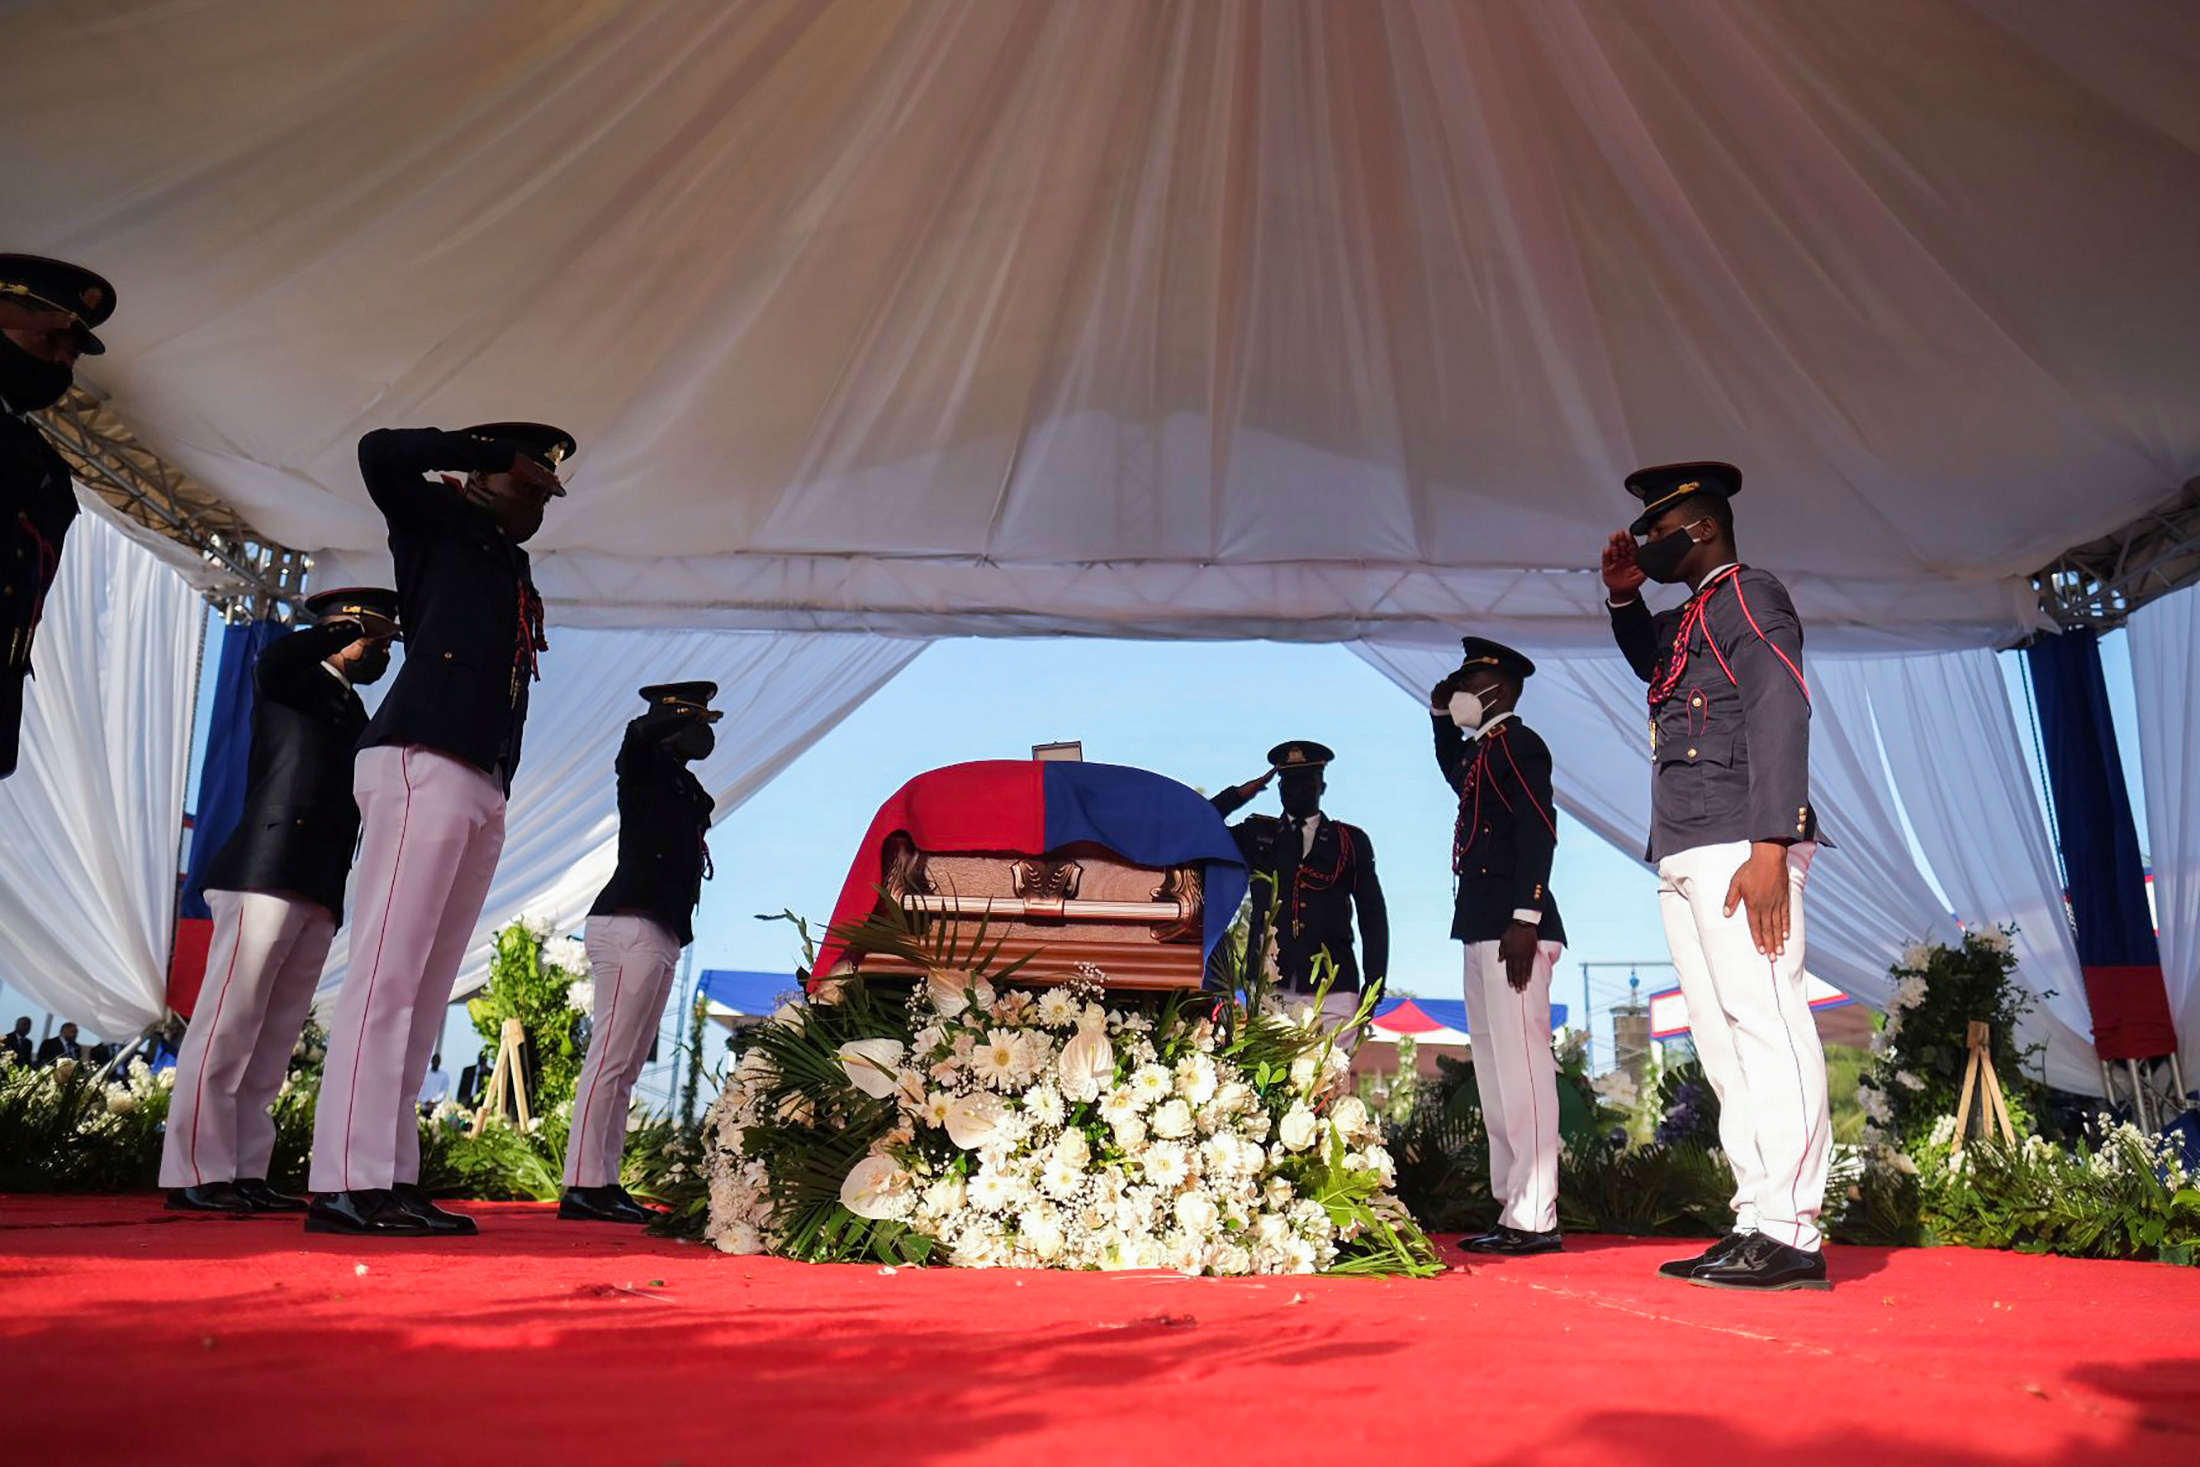 Pallbearers in military attire salute next to a coffin holding the body of late Haitian President Jovenel Moise after he was shot dead at his home in Port-au-Prince earlier this month, in Cap-Haitien, July 23, 2021. REUTERS/Ricardo Arduengo